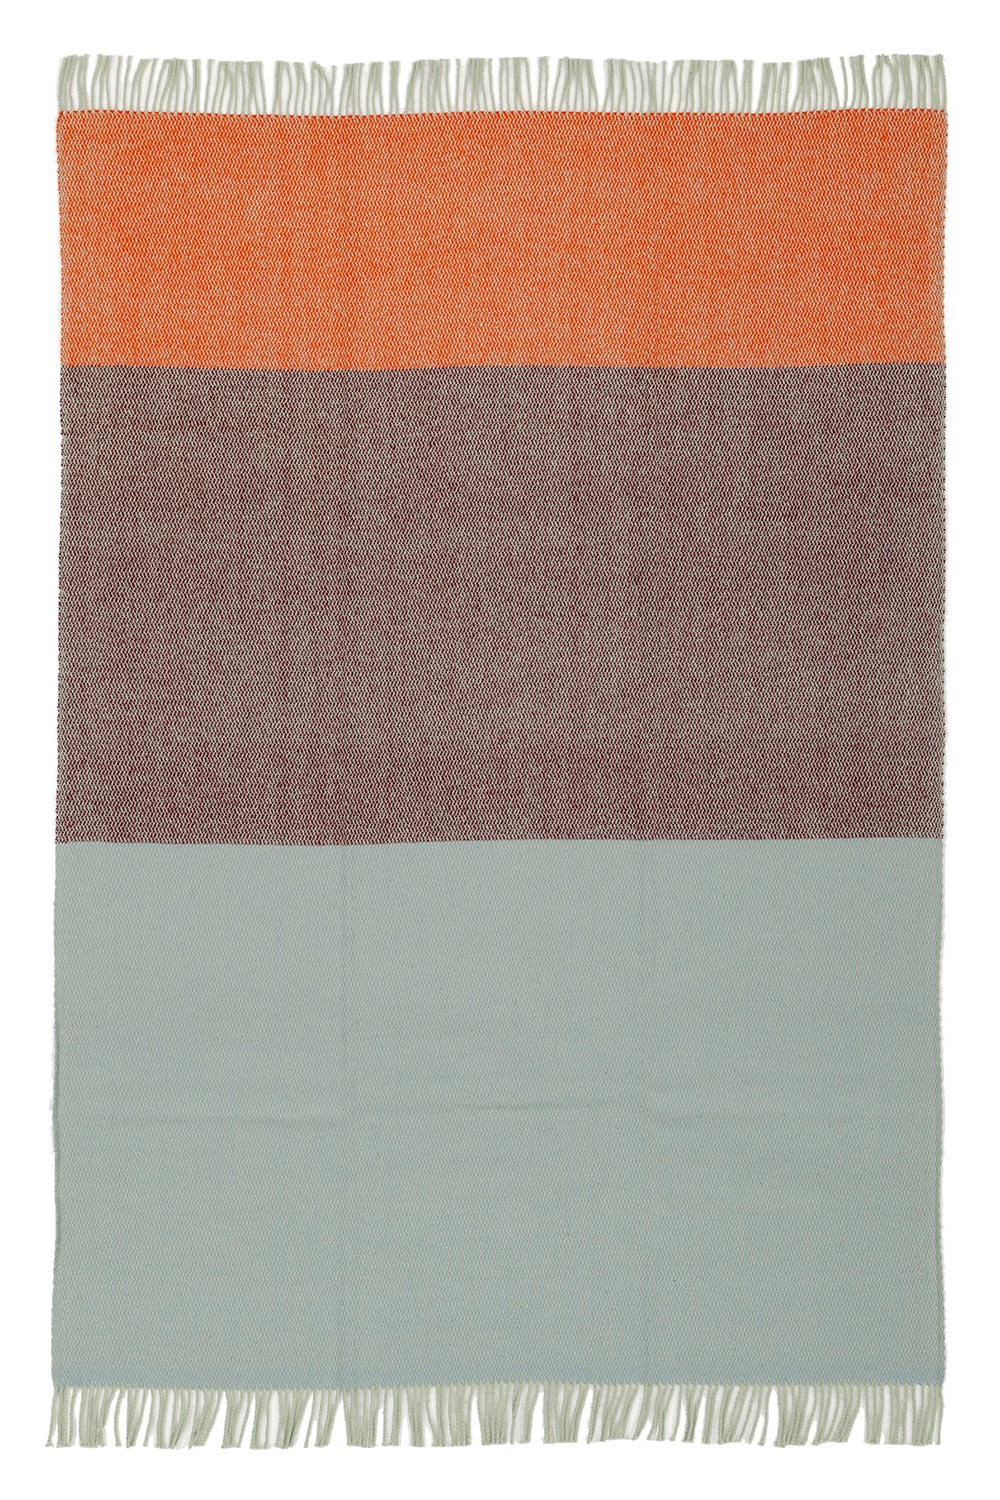 wool blanket in plum, orange and blue color with fringes, spread out